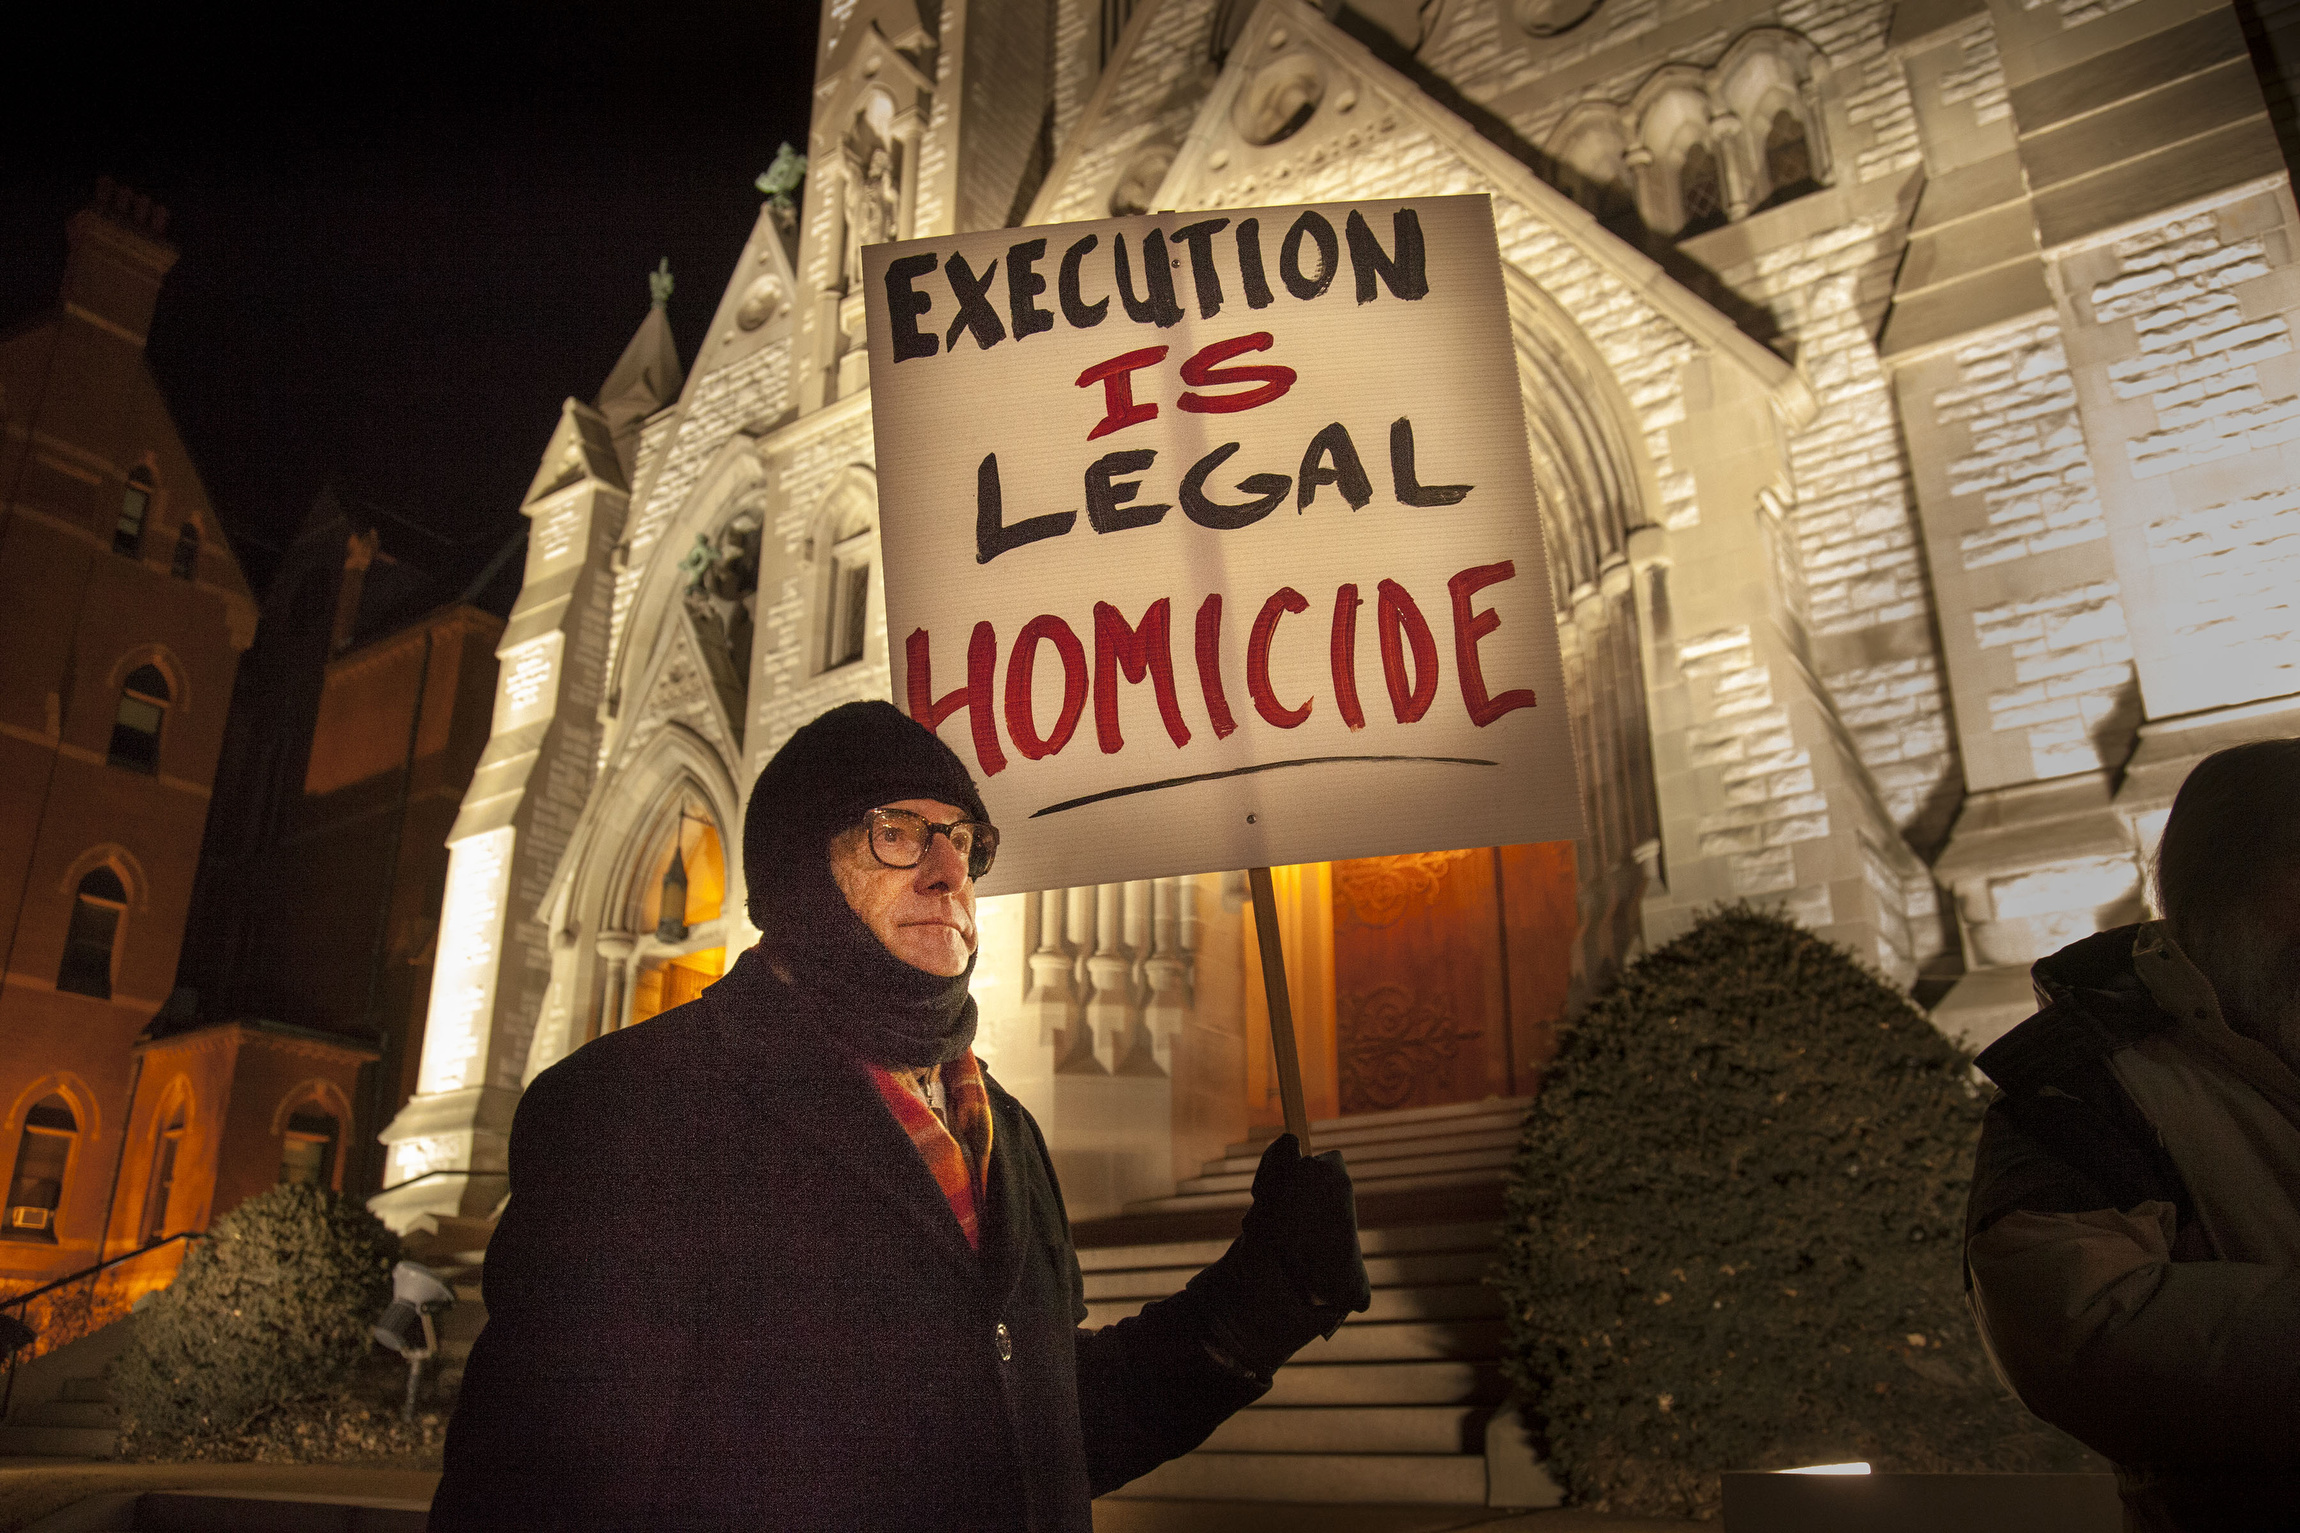 national catholic journals unite capital punishment must end man holds sign at vigil outside st louis university college church ahead of execution of